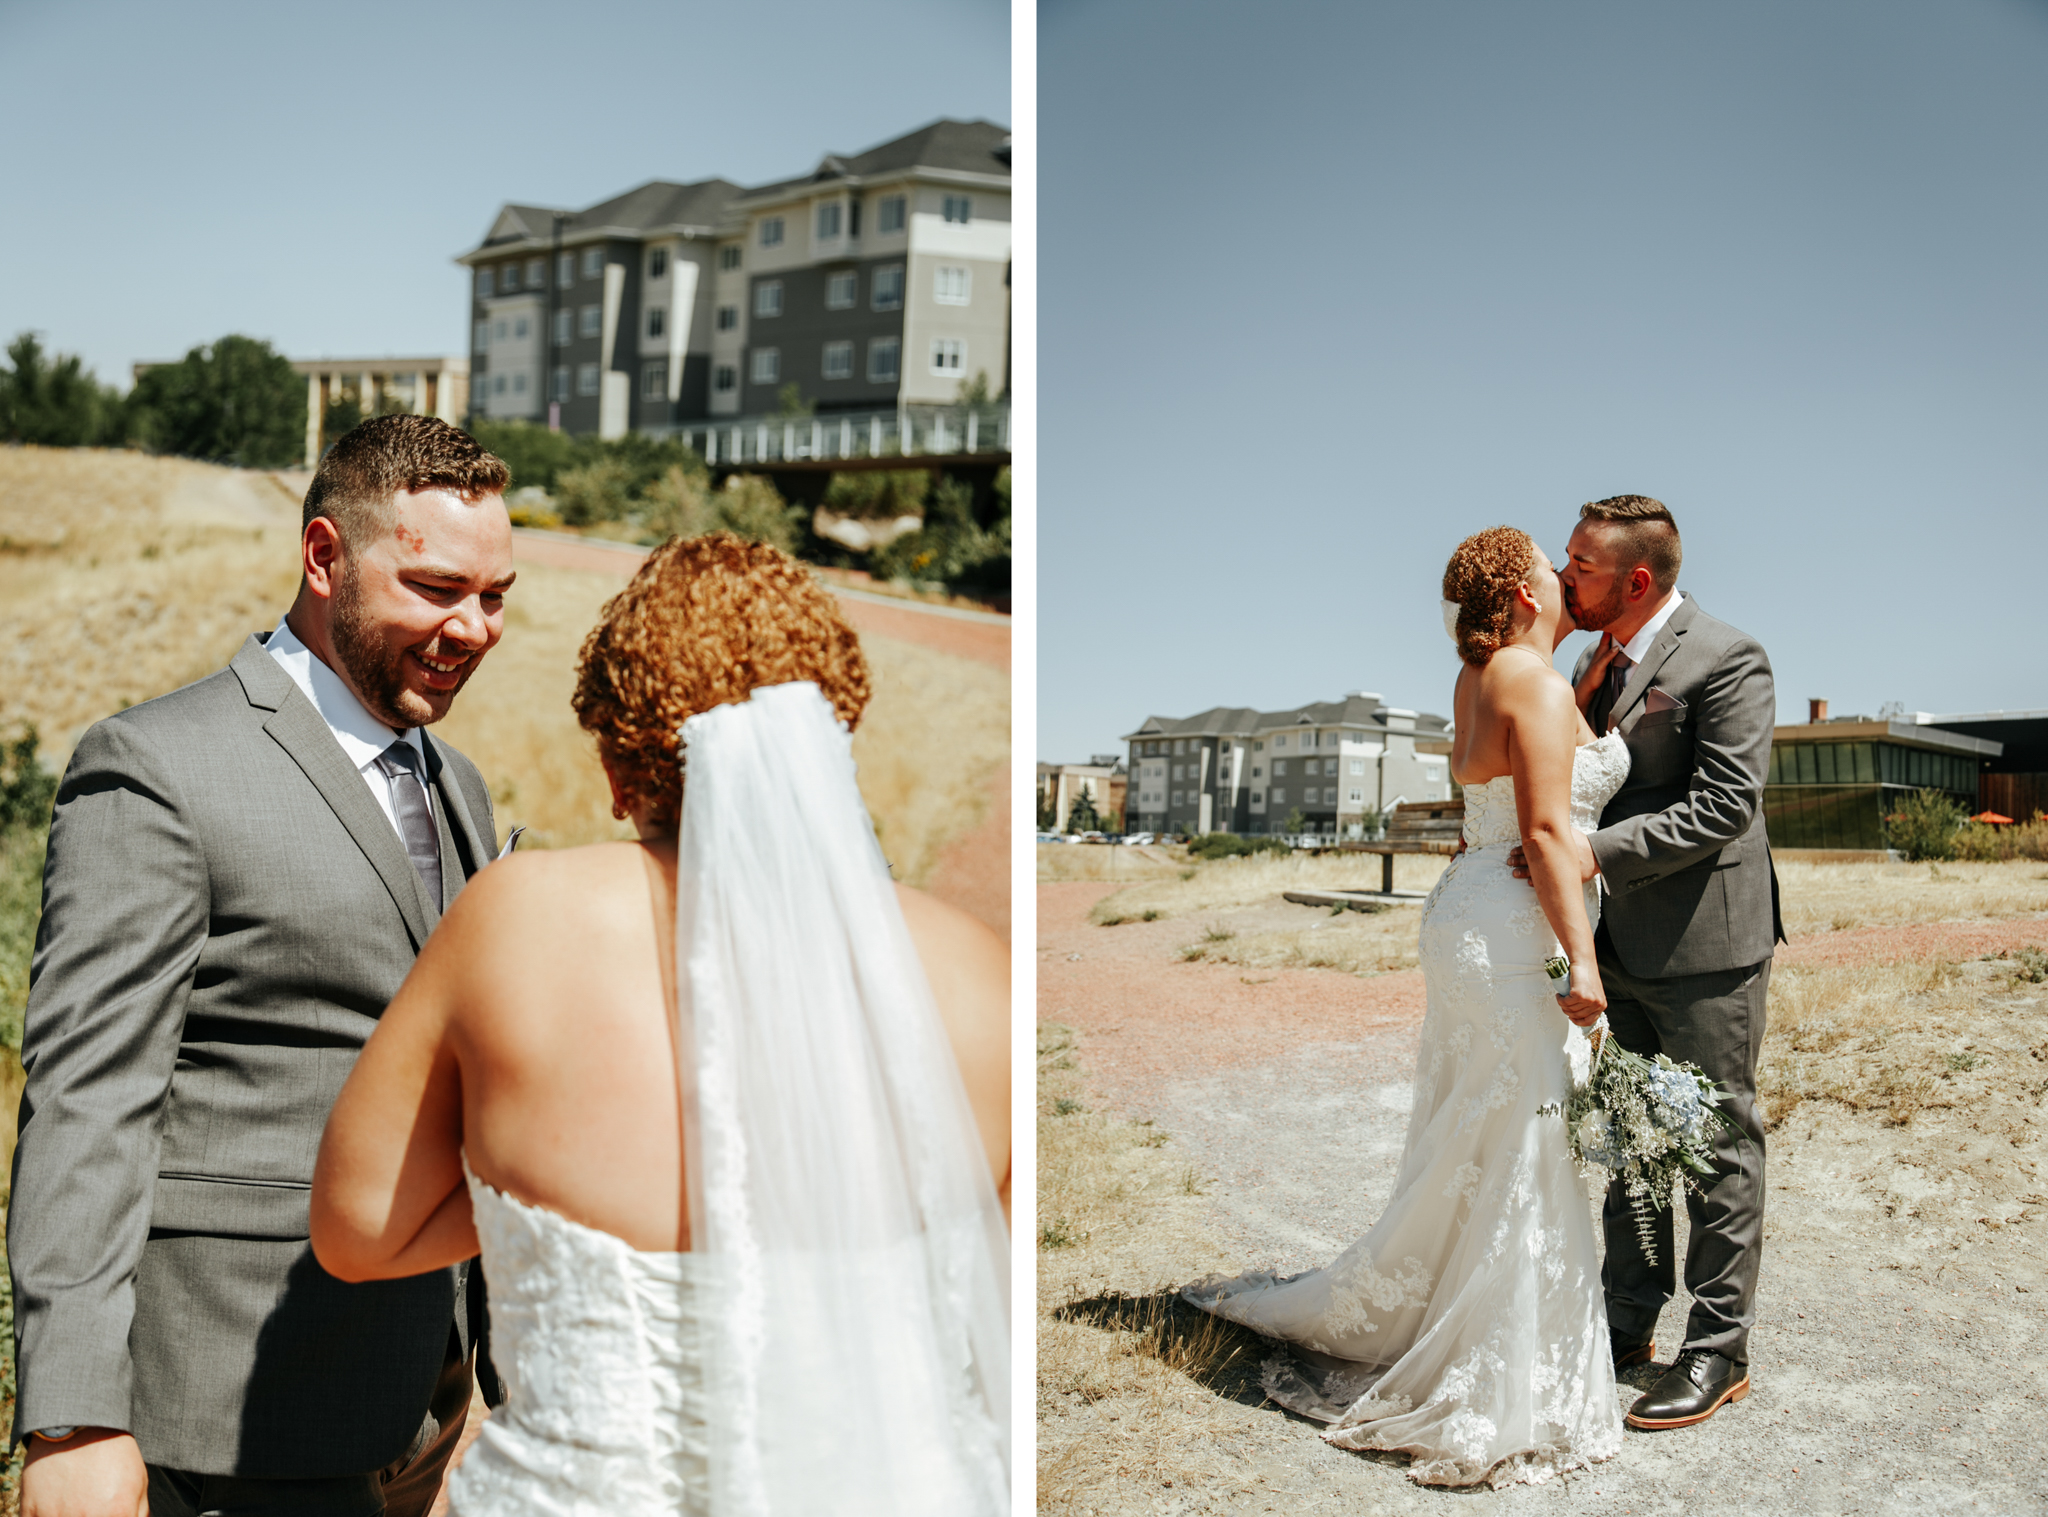 lethbridge-wedding-photographer-love-and-be-loved-photography-trent-danielle-galt-reception-picture-image-photo-81.jpg